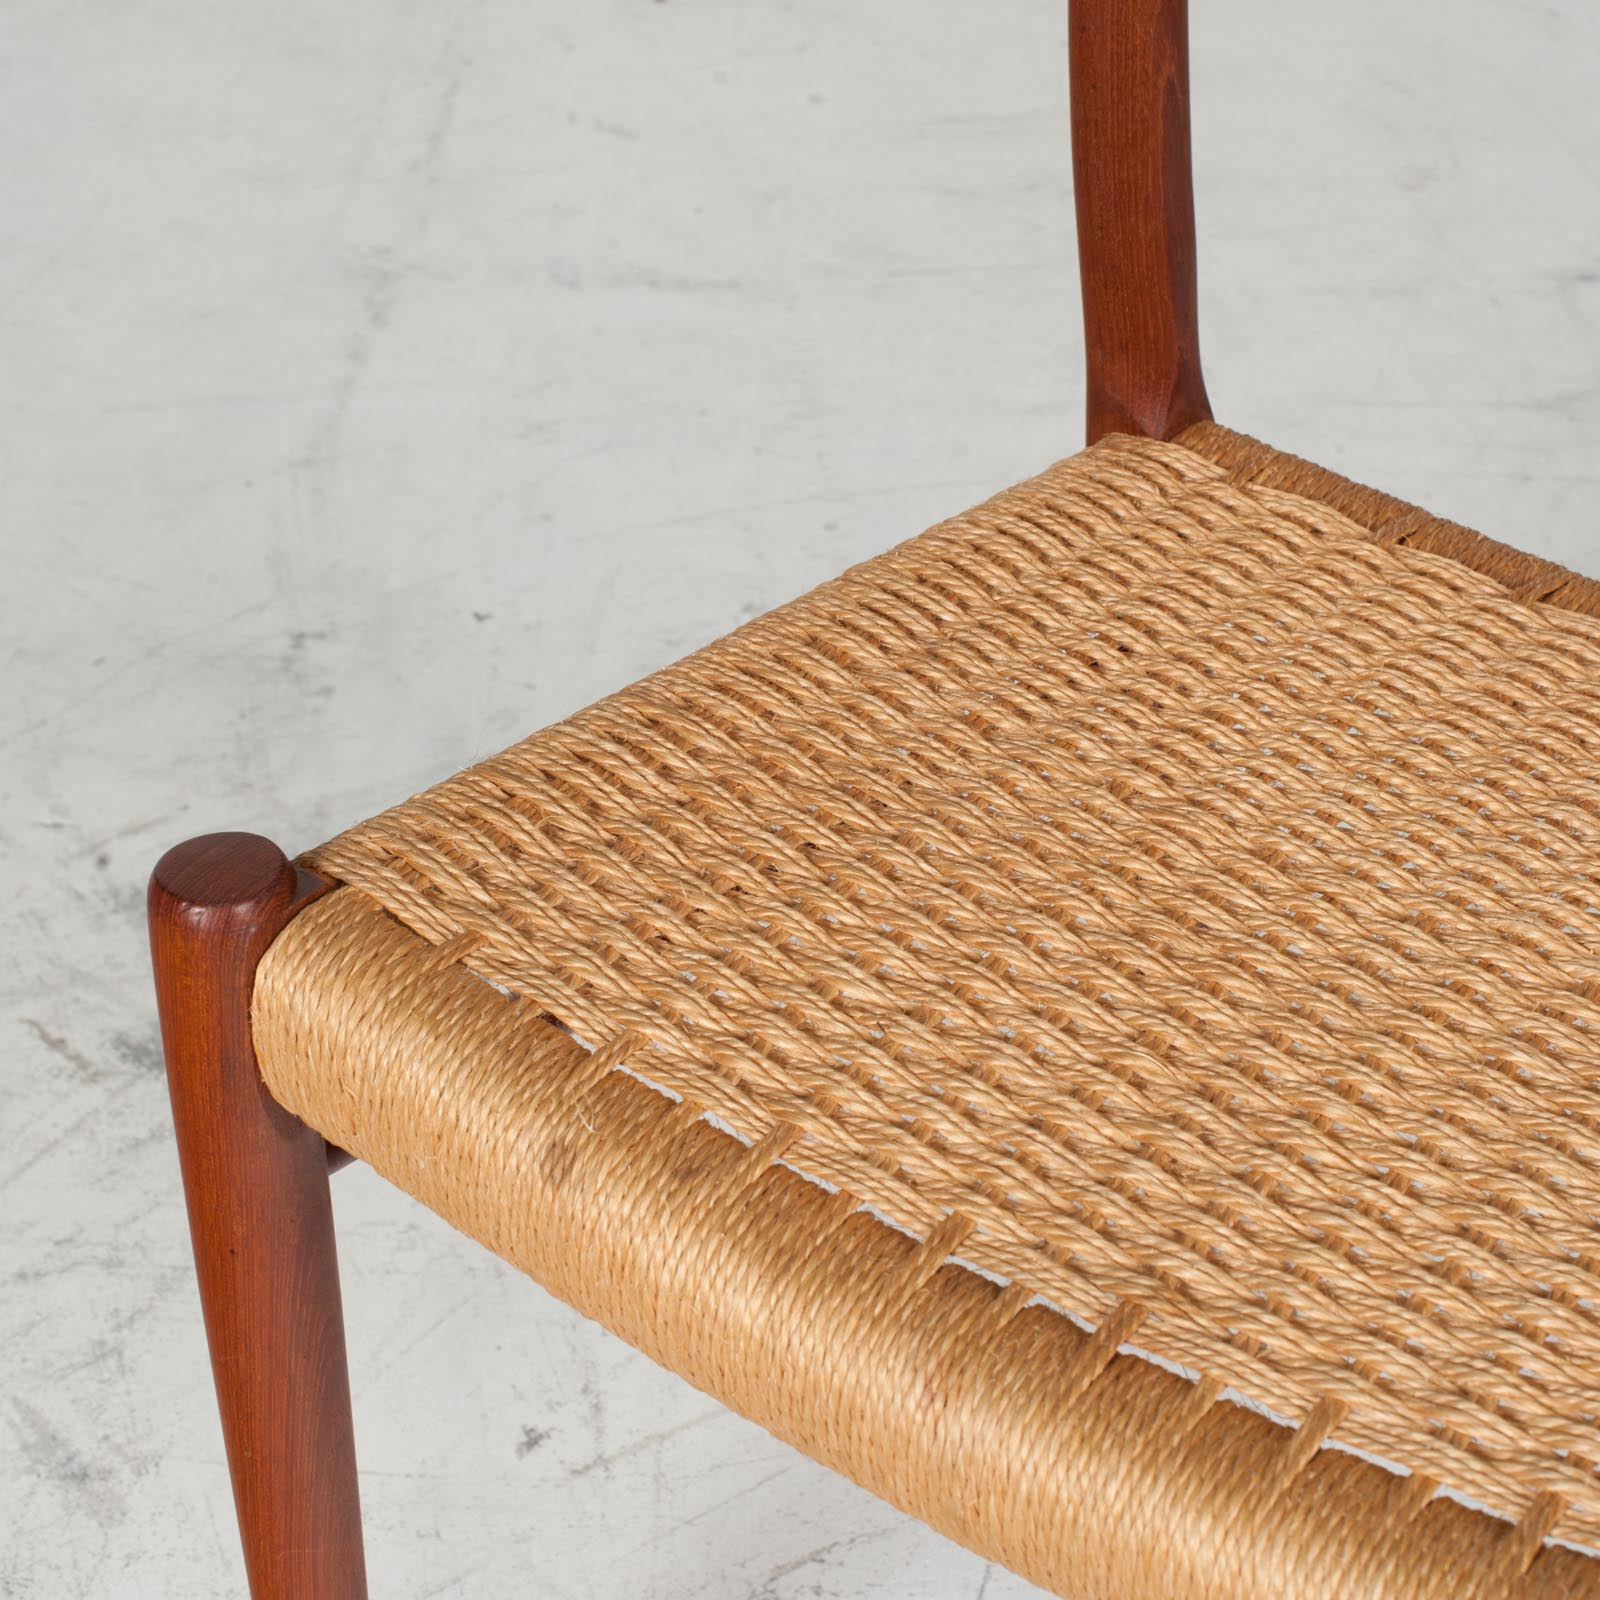 Set Of 6 Model 75 Dining Chairs By J. L. Moller In Teak And Cord 1960s Denmark 05